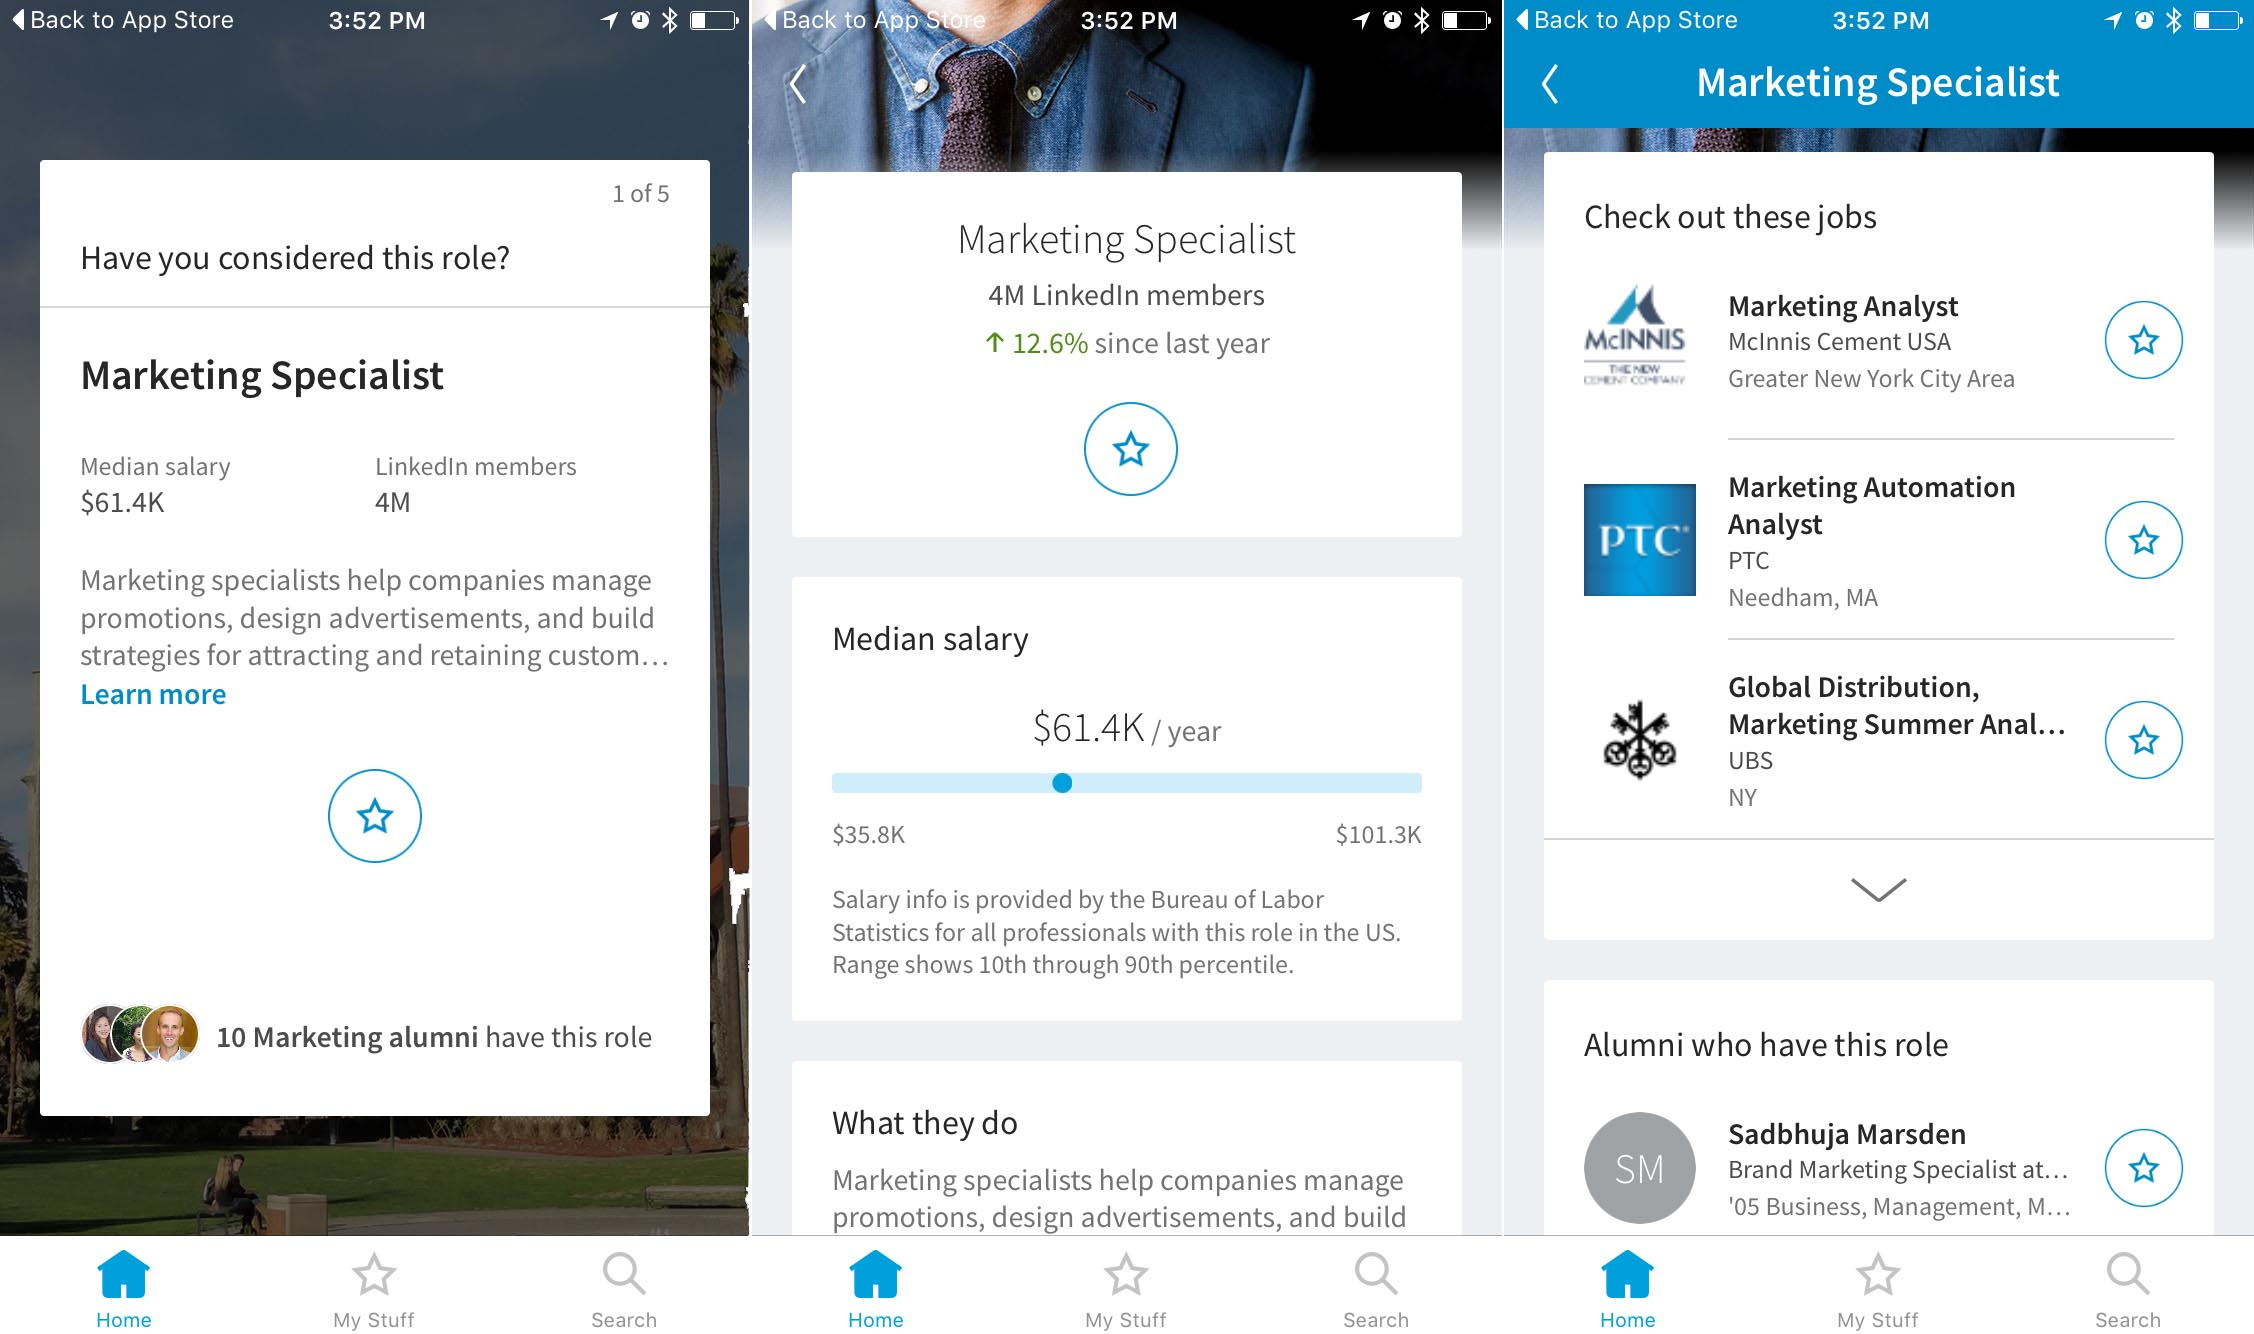 linkedin s newest app helps college grads jobs venturebeat above screenshots of linkedin students ios app displaying roles you might be interested in